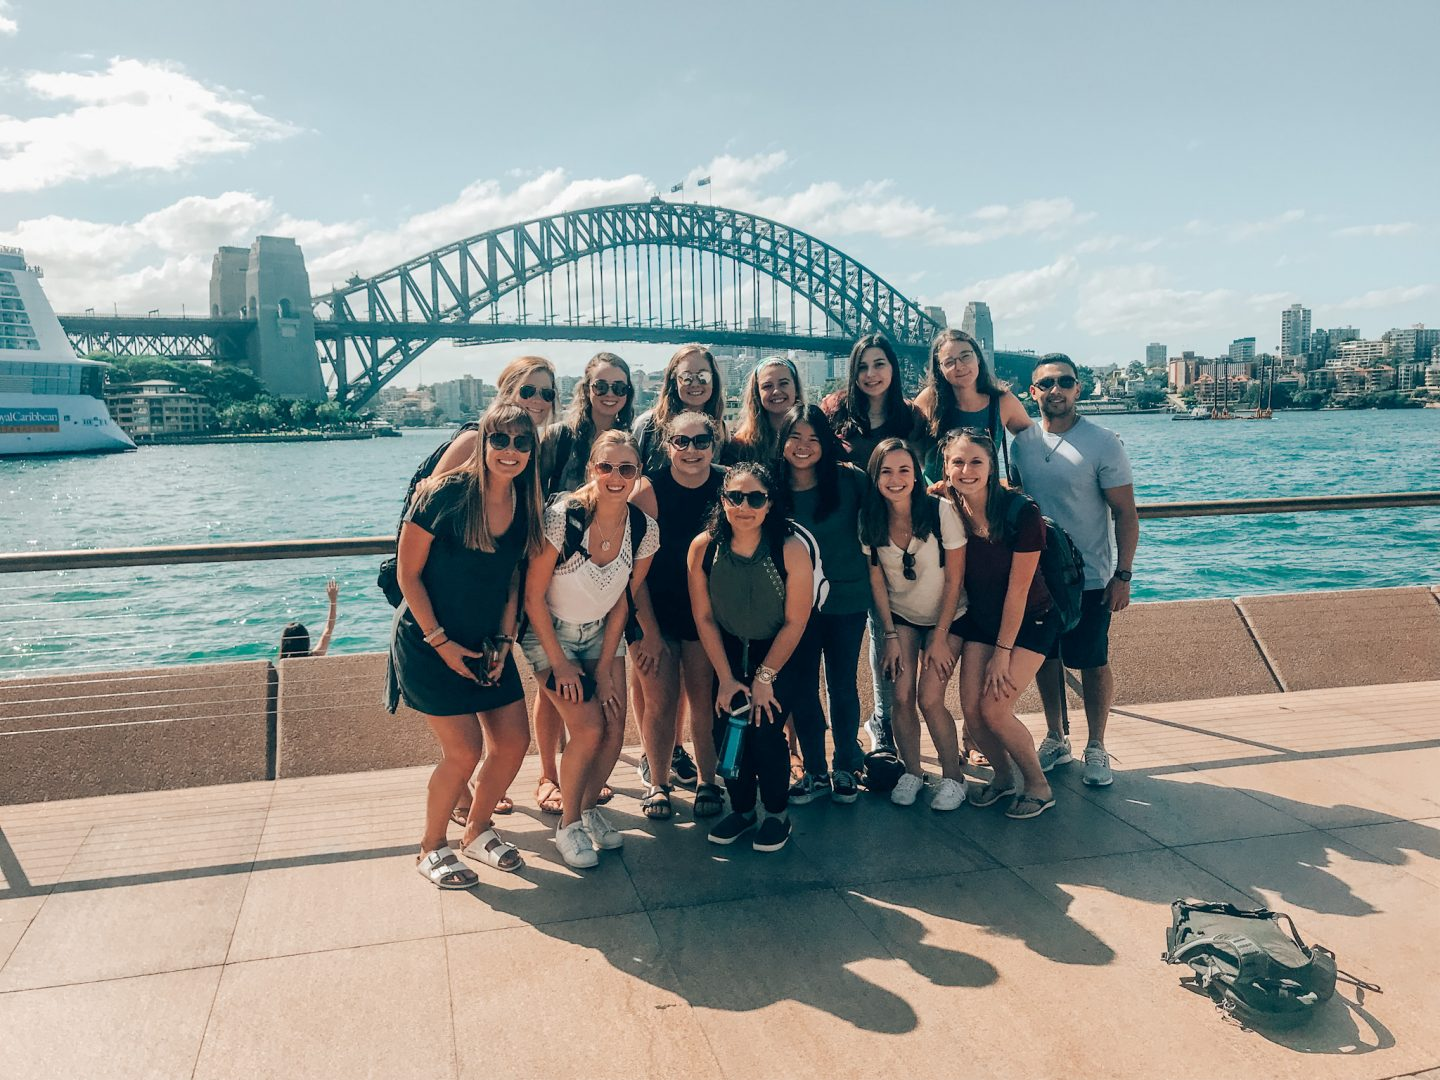 My study abroad friends and I posing in Circular Quay in front of the Sydney Harbor Bridge.